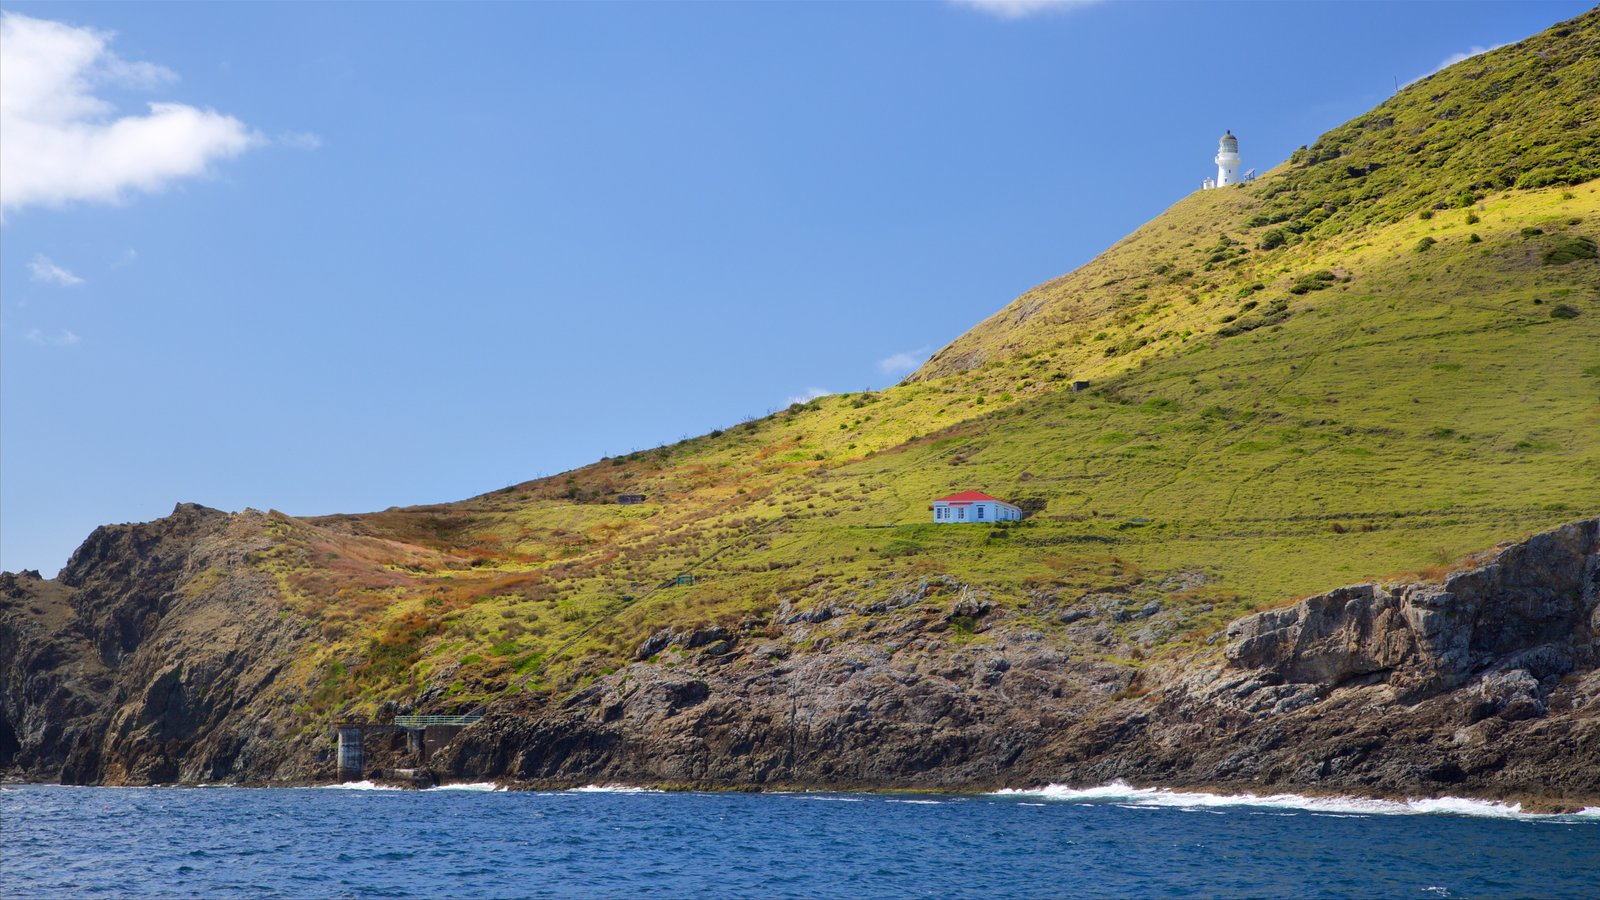 Cape Brett Lighthouse showing a bay or harbor, a lighthouse and rugged coastline